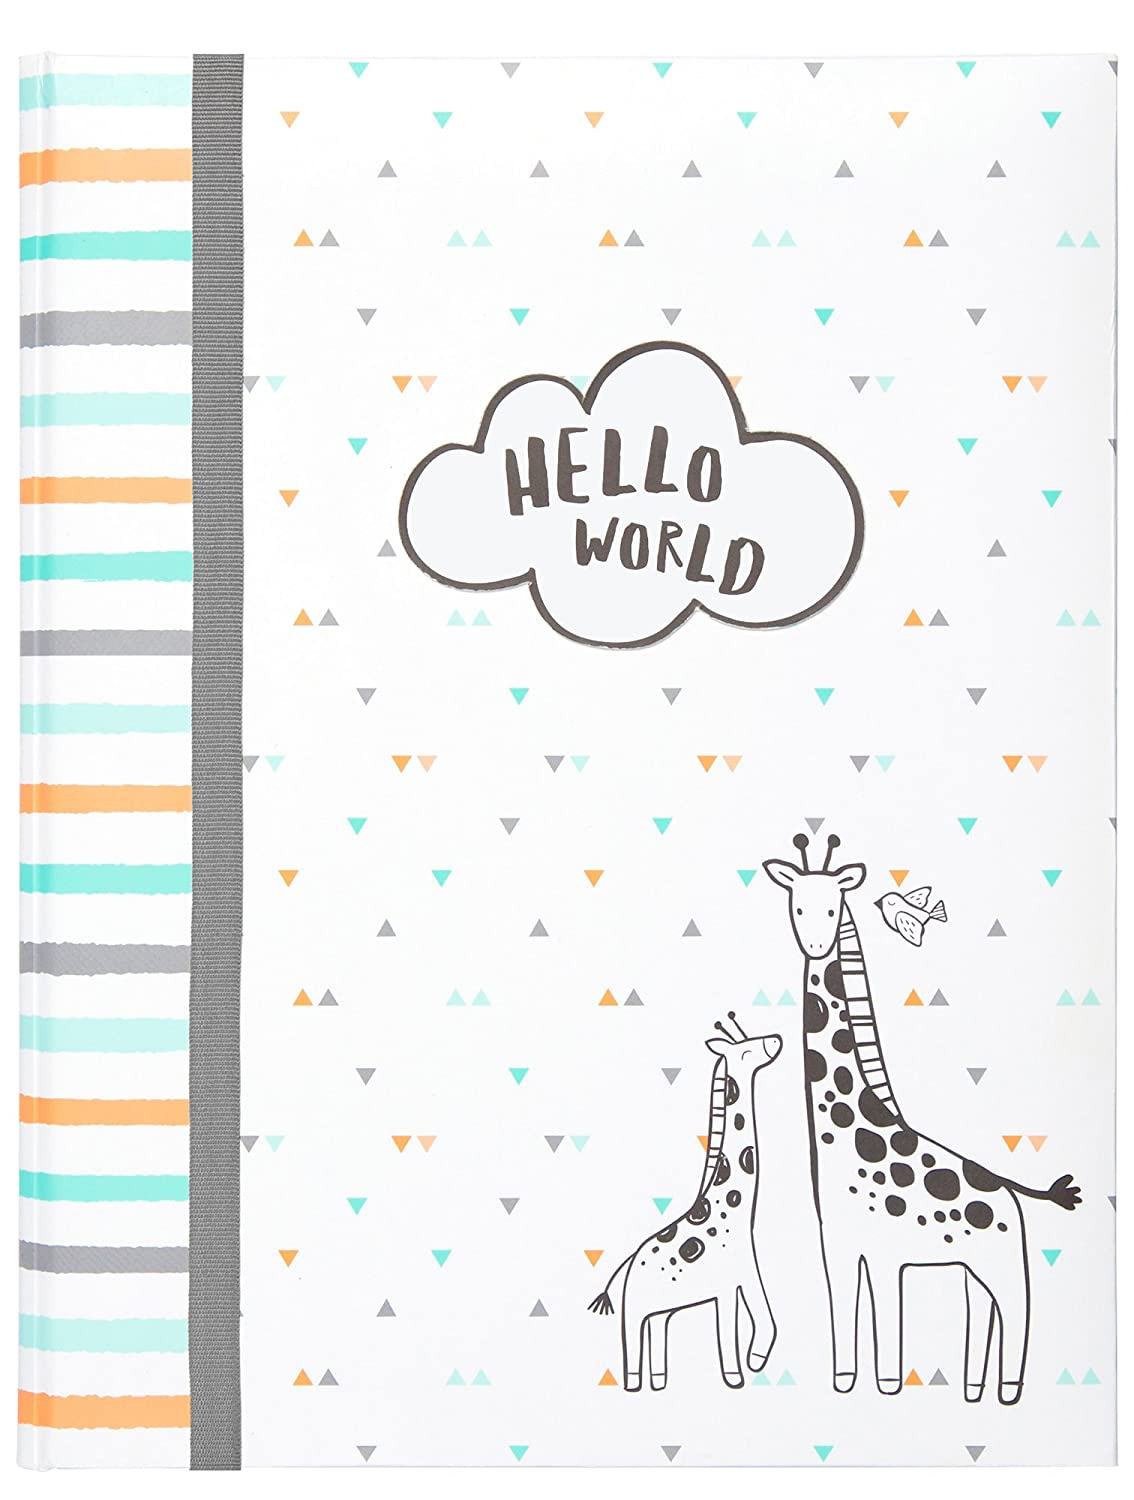 Carter's Hello World Animal Themed Bound Baby Memory Book, 64 Pages, 9 W x 11.125 H 9 W x 11.125 H C.R. Gibson - Baby B2-18280